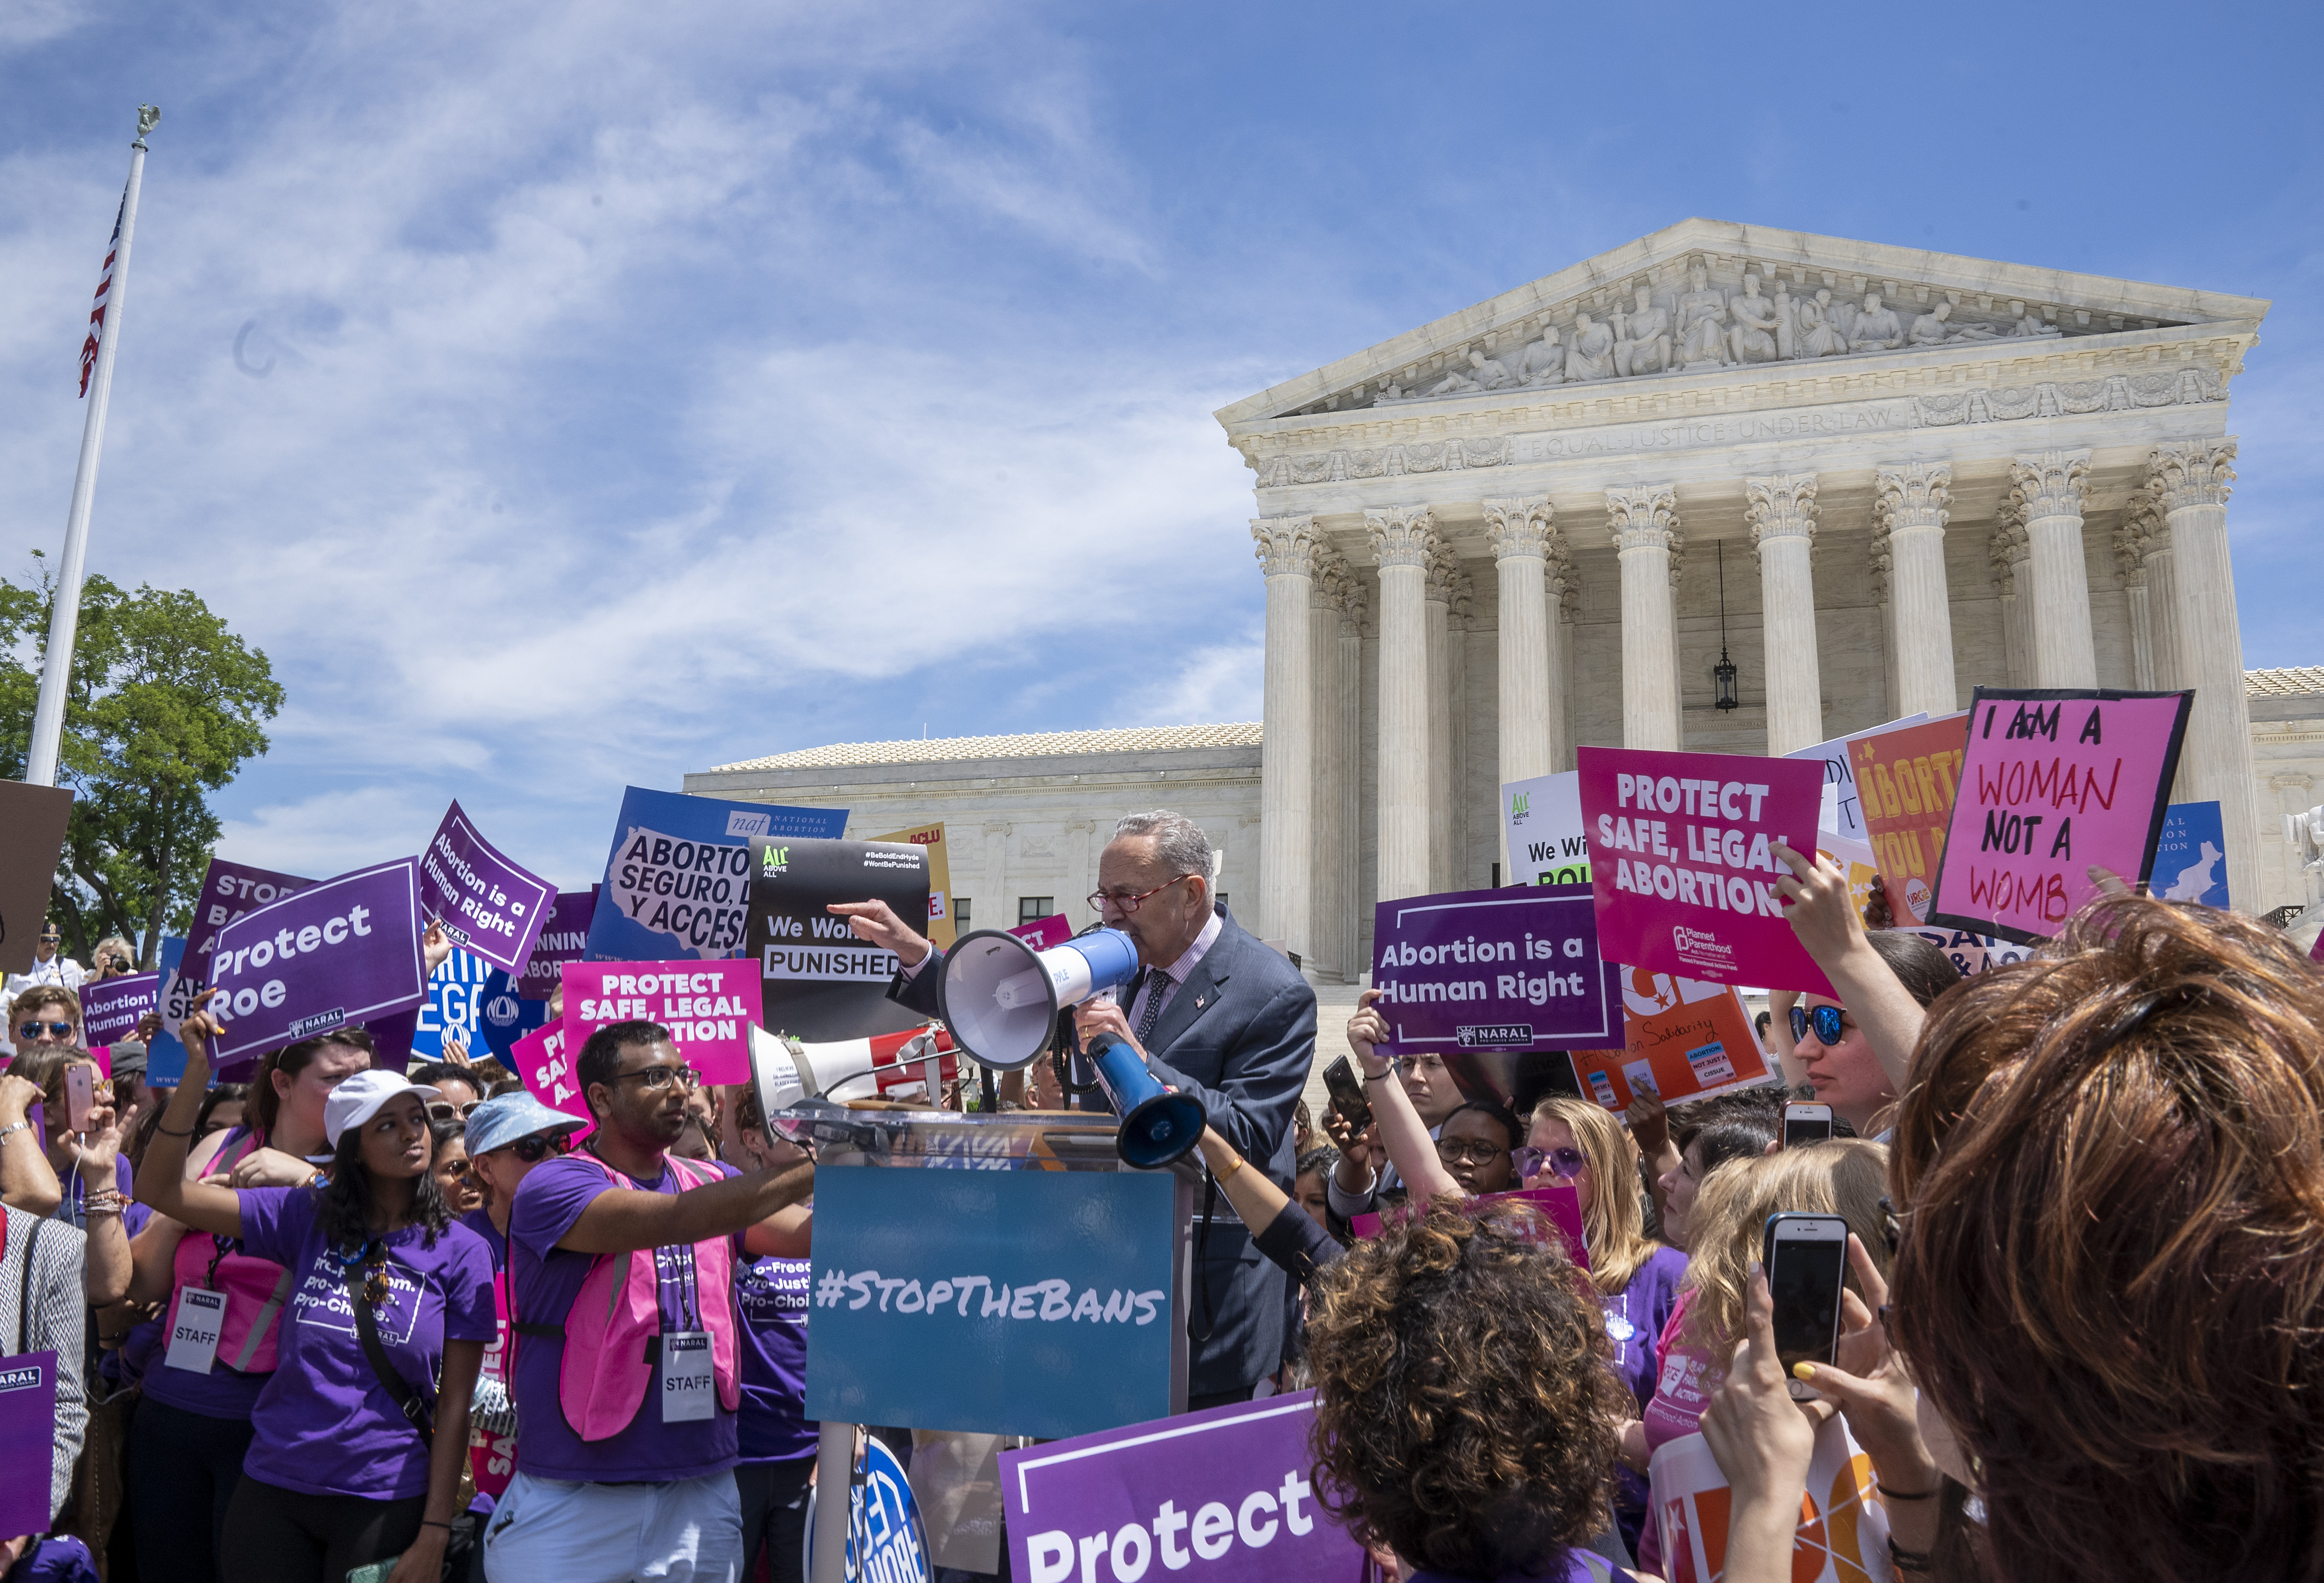 Senate Minority Leader Charles Schumer speaks at a pro-choice rally at the Supreme Court on May 21, 2019. (Tasos Katopodis/Getty Images)